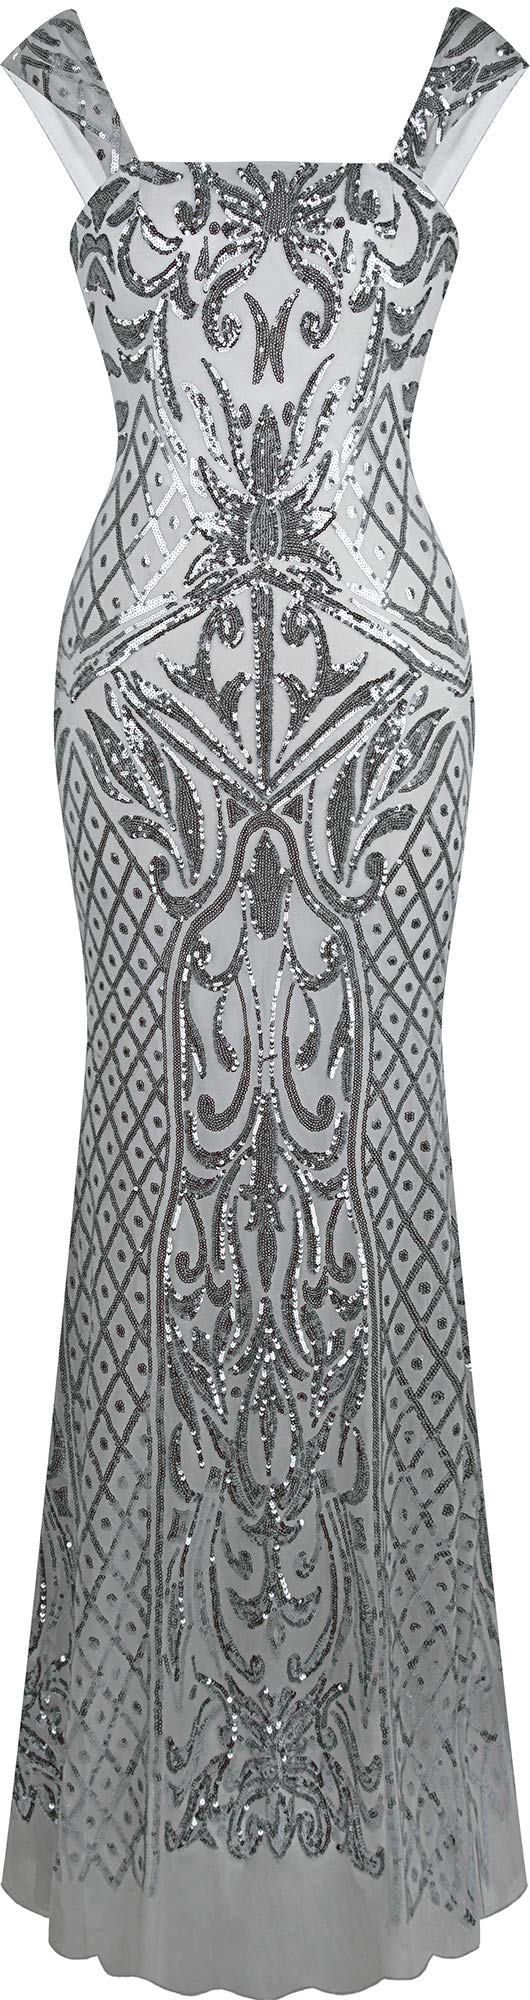 Angel-fashions Women's Square Collar Silver Sequin Floral Pattern Wrap Evening Dress Large